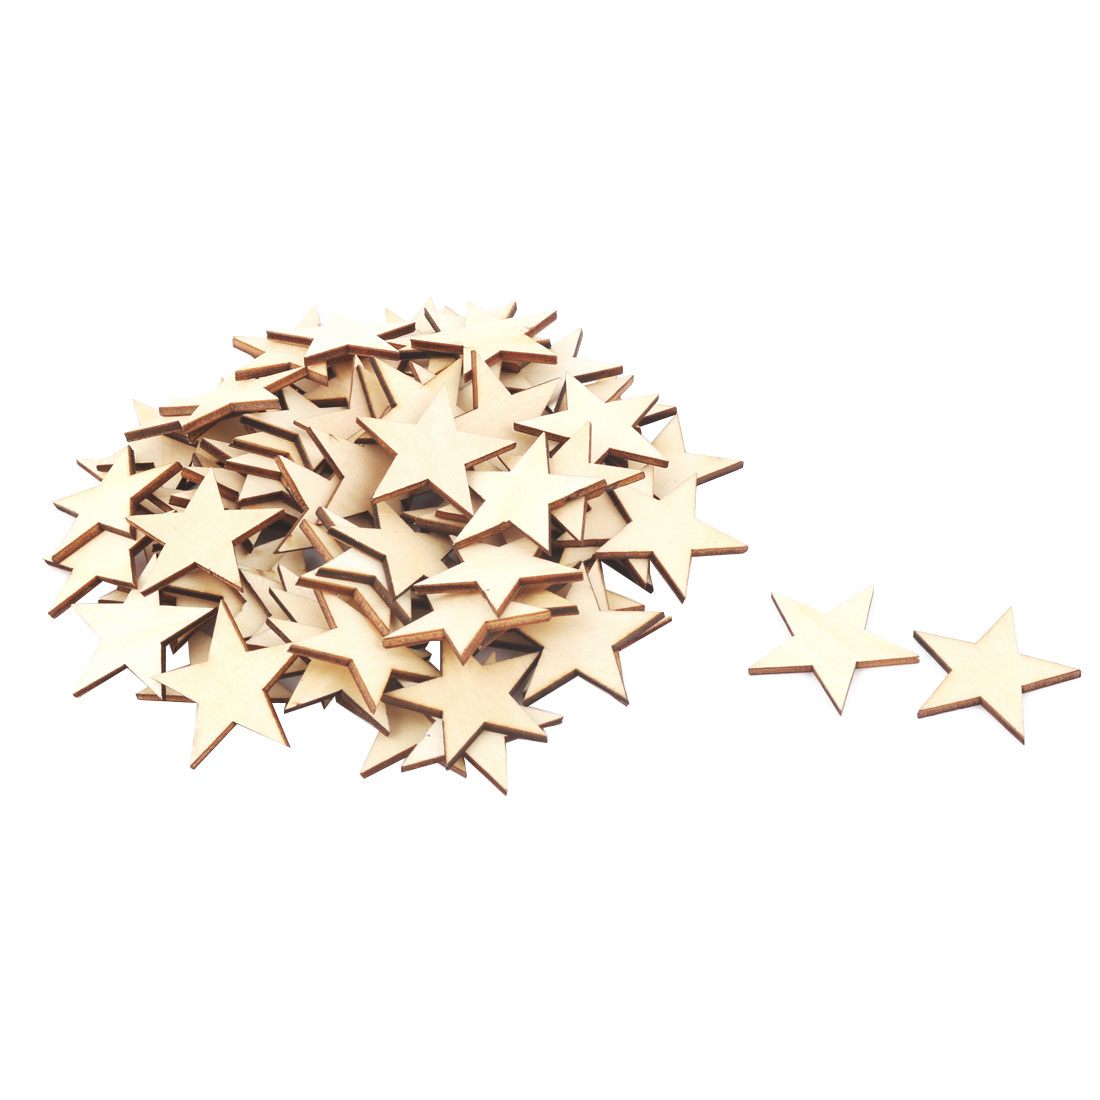 Unique Bargains Wooden Star Shaped DIY Craft Christmas Tree Ornaments Beige 40 x 40mm 75 Pcs